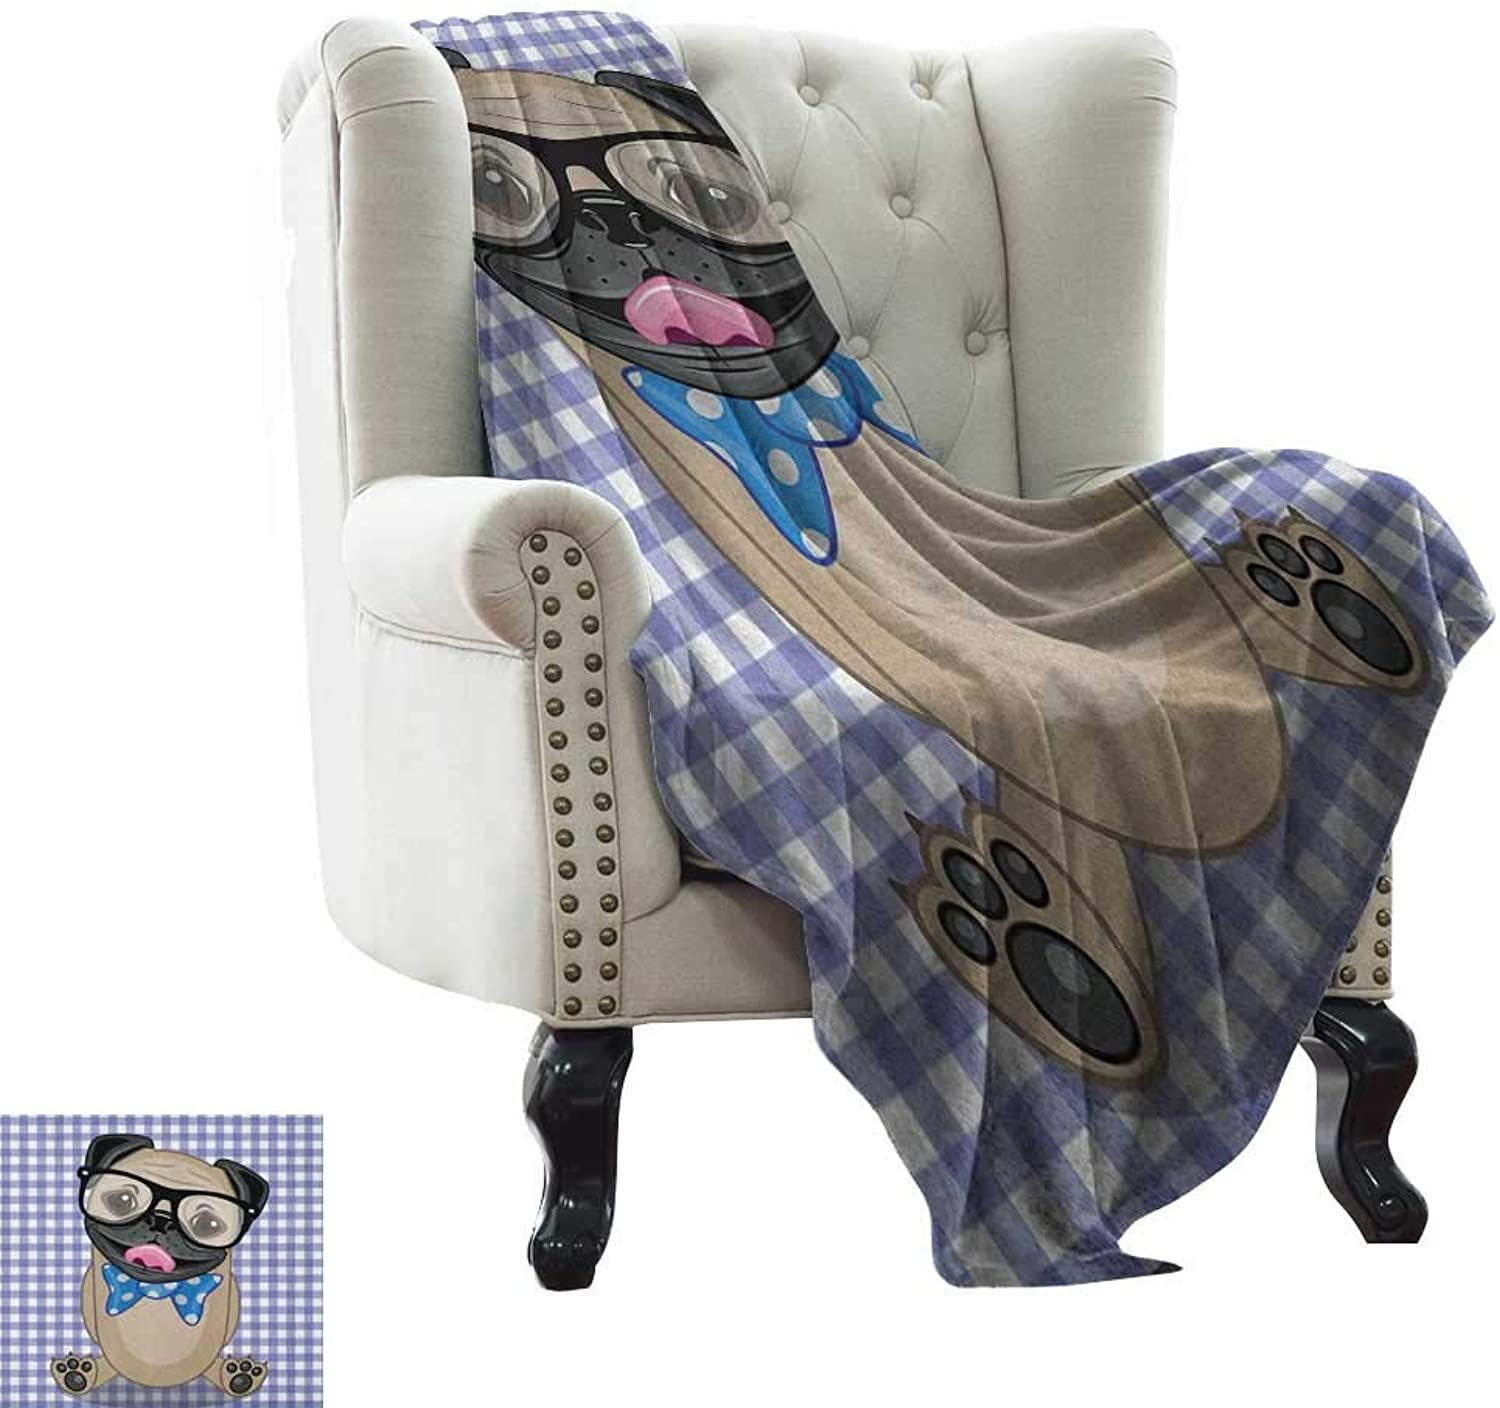 Weighted Blanket for Kids Pug,Nerdy Glasses and Dotted Bow Tie on a Puppy Pug with a Checkered Backdrop, Sand Brown Black bluee Super Soft and Comfortable,Suitable for Sofas,Chairs,beds 60 x62